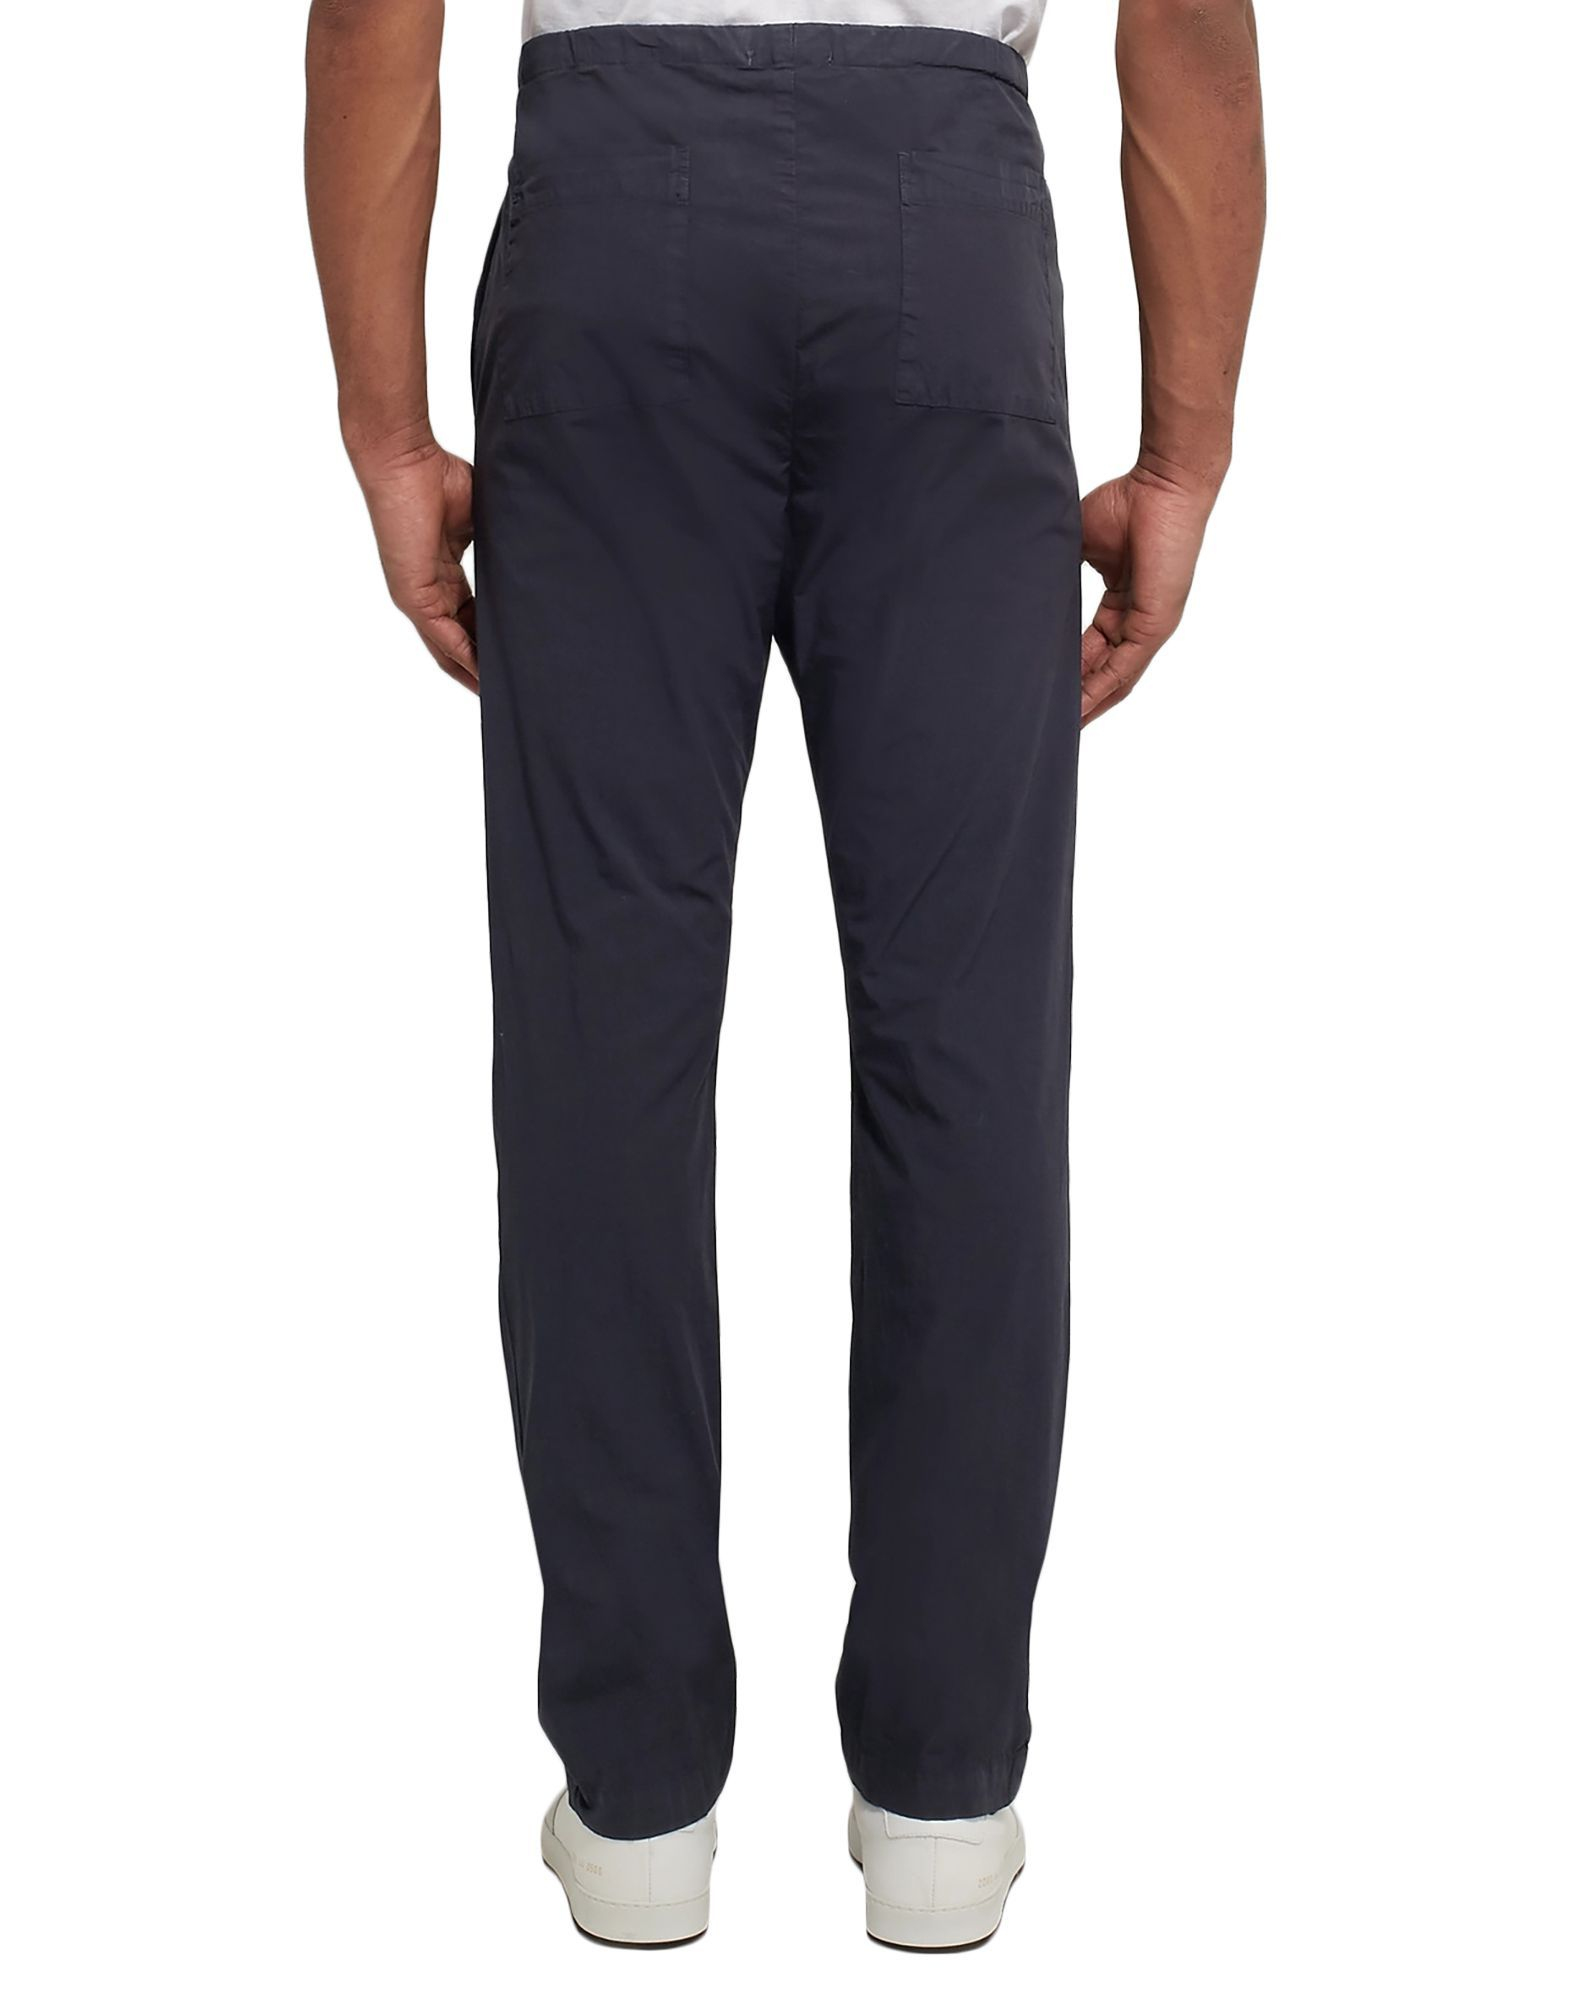 James Perse Dark Blue Cotton Trousers